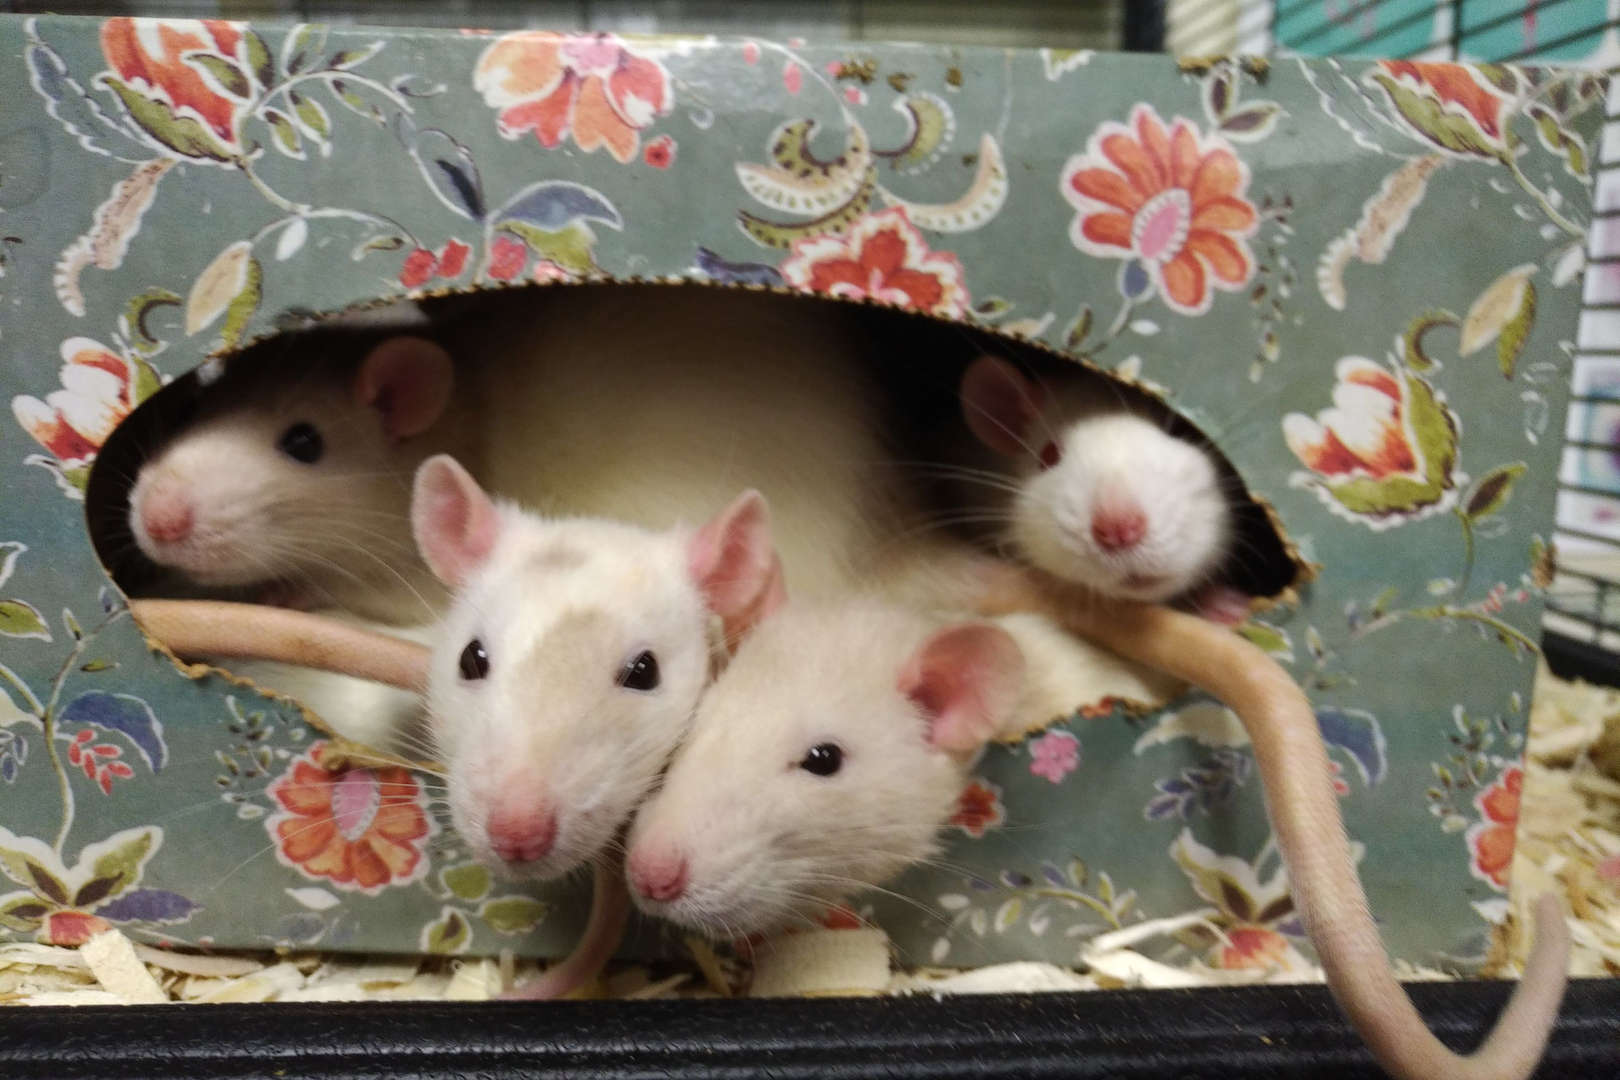 Rats snuggle up in an empty tissue box